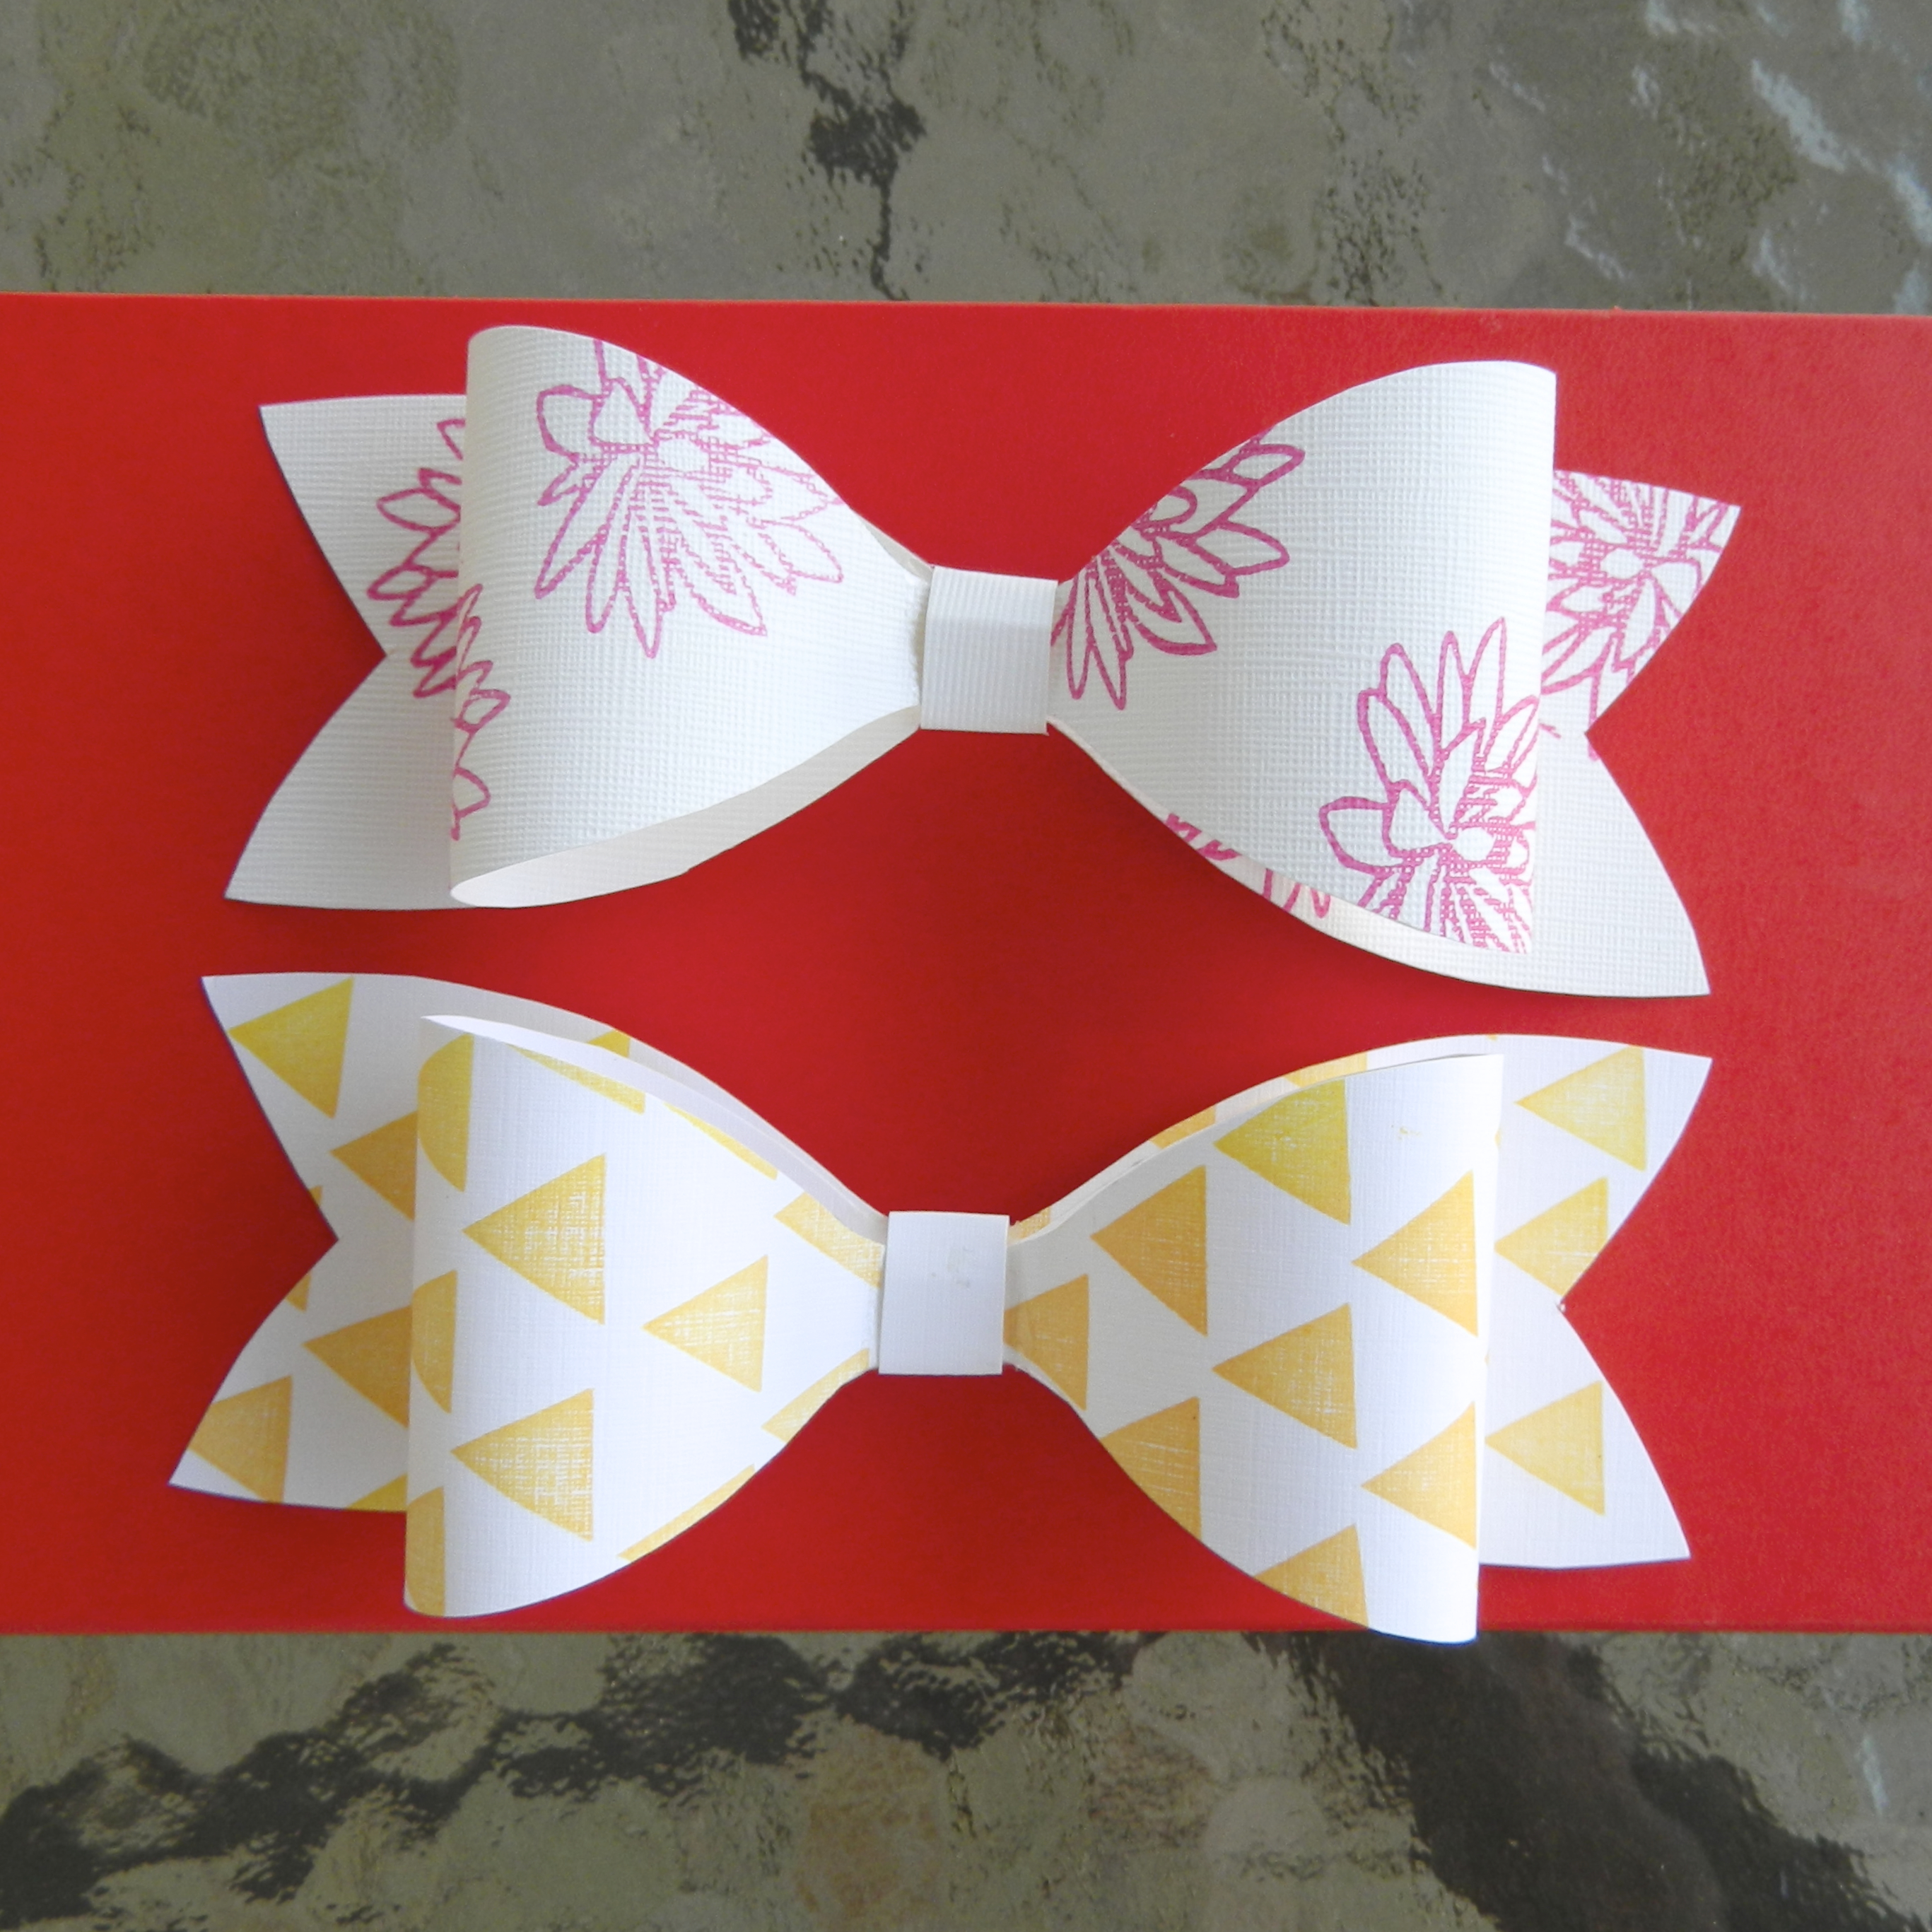 Diy gift bow make it take a bow leave your imprint creatiate blog diy stamped gift bow solutioingenieria Images